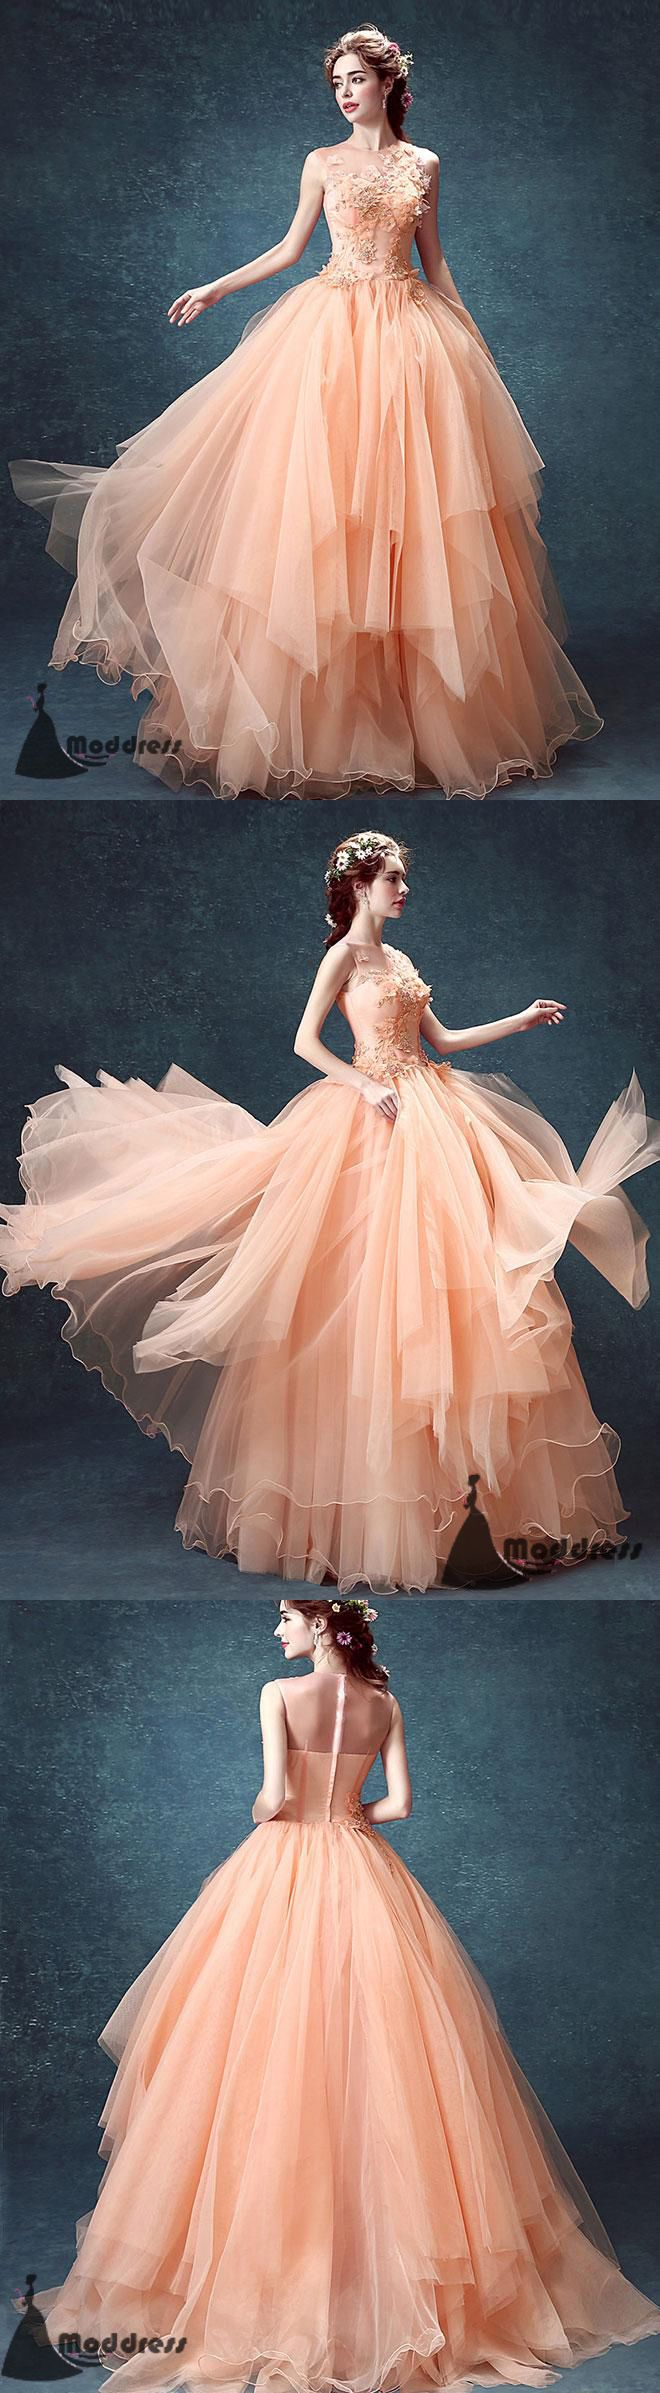 Applique Long Prom Dress Scoop Evening Dress Tulle Ball Gowns Formal Dress,HS532 #fashion#promdress#eveningdress#promgowns#cocktaildress